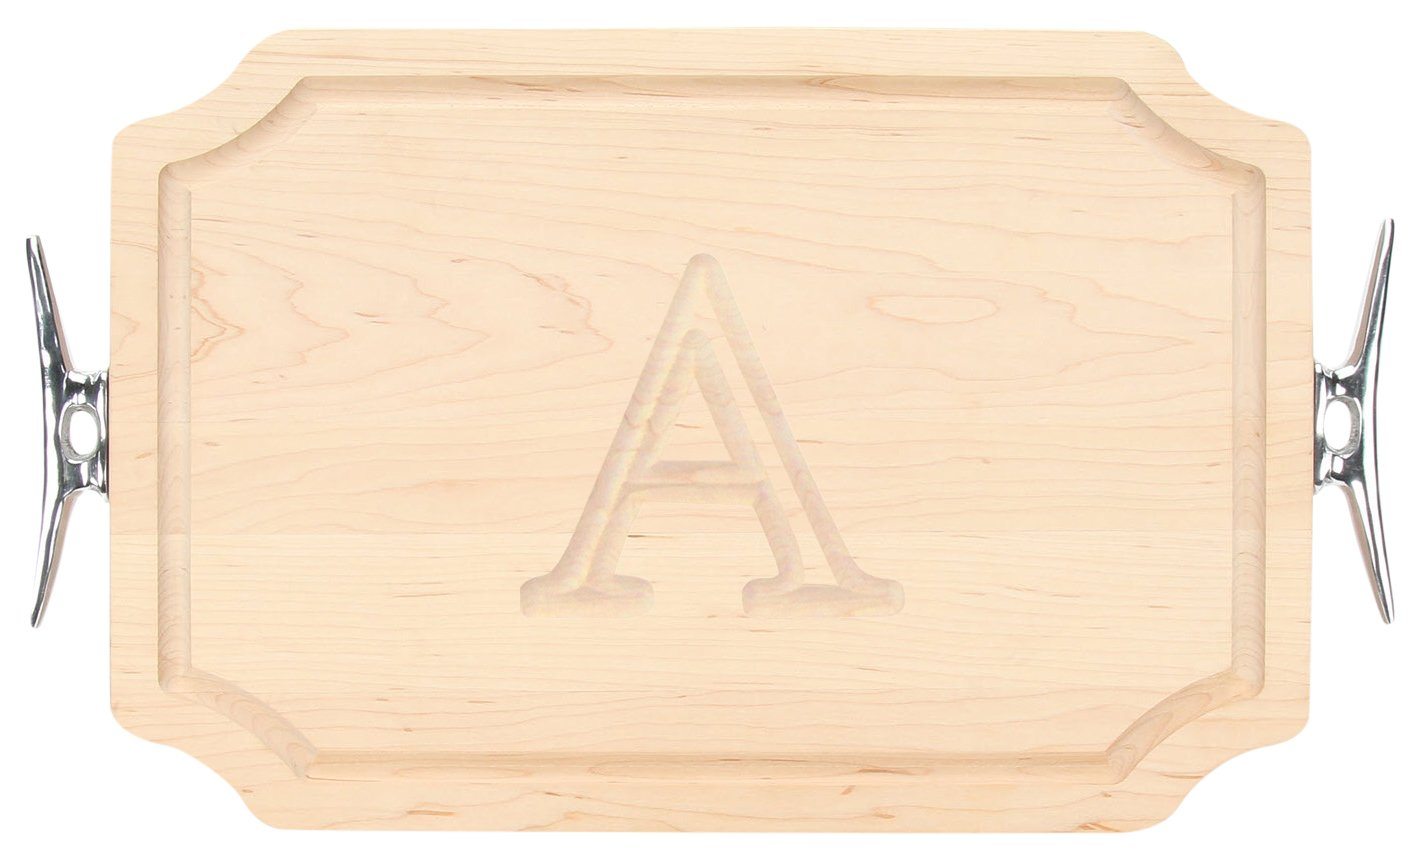 15-Inch by 24-Inch by 1.25-Inch MonogrammedL BigWood Boards 320-LCLT-L Carving Board with Scalloped Corners with Large Boat Cleat Handle in Cast Aluminum Maple MonogrammedL